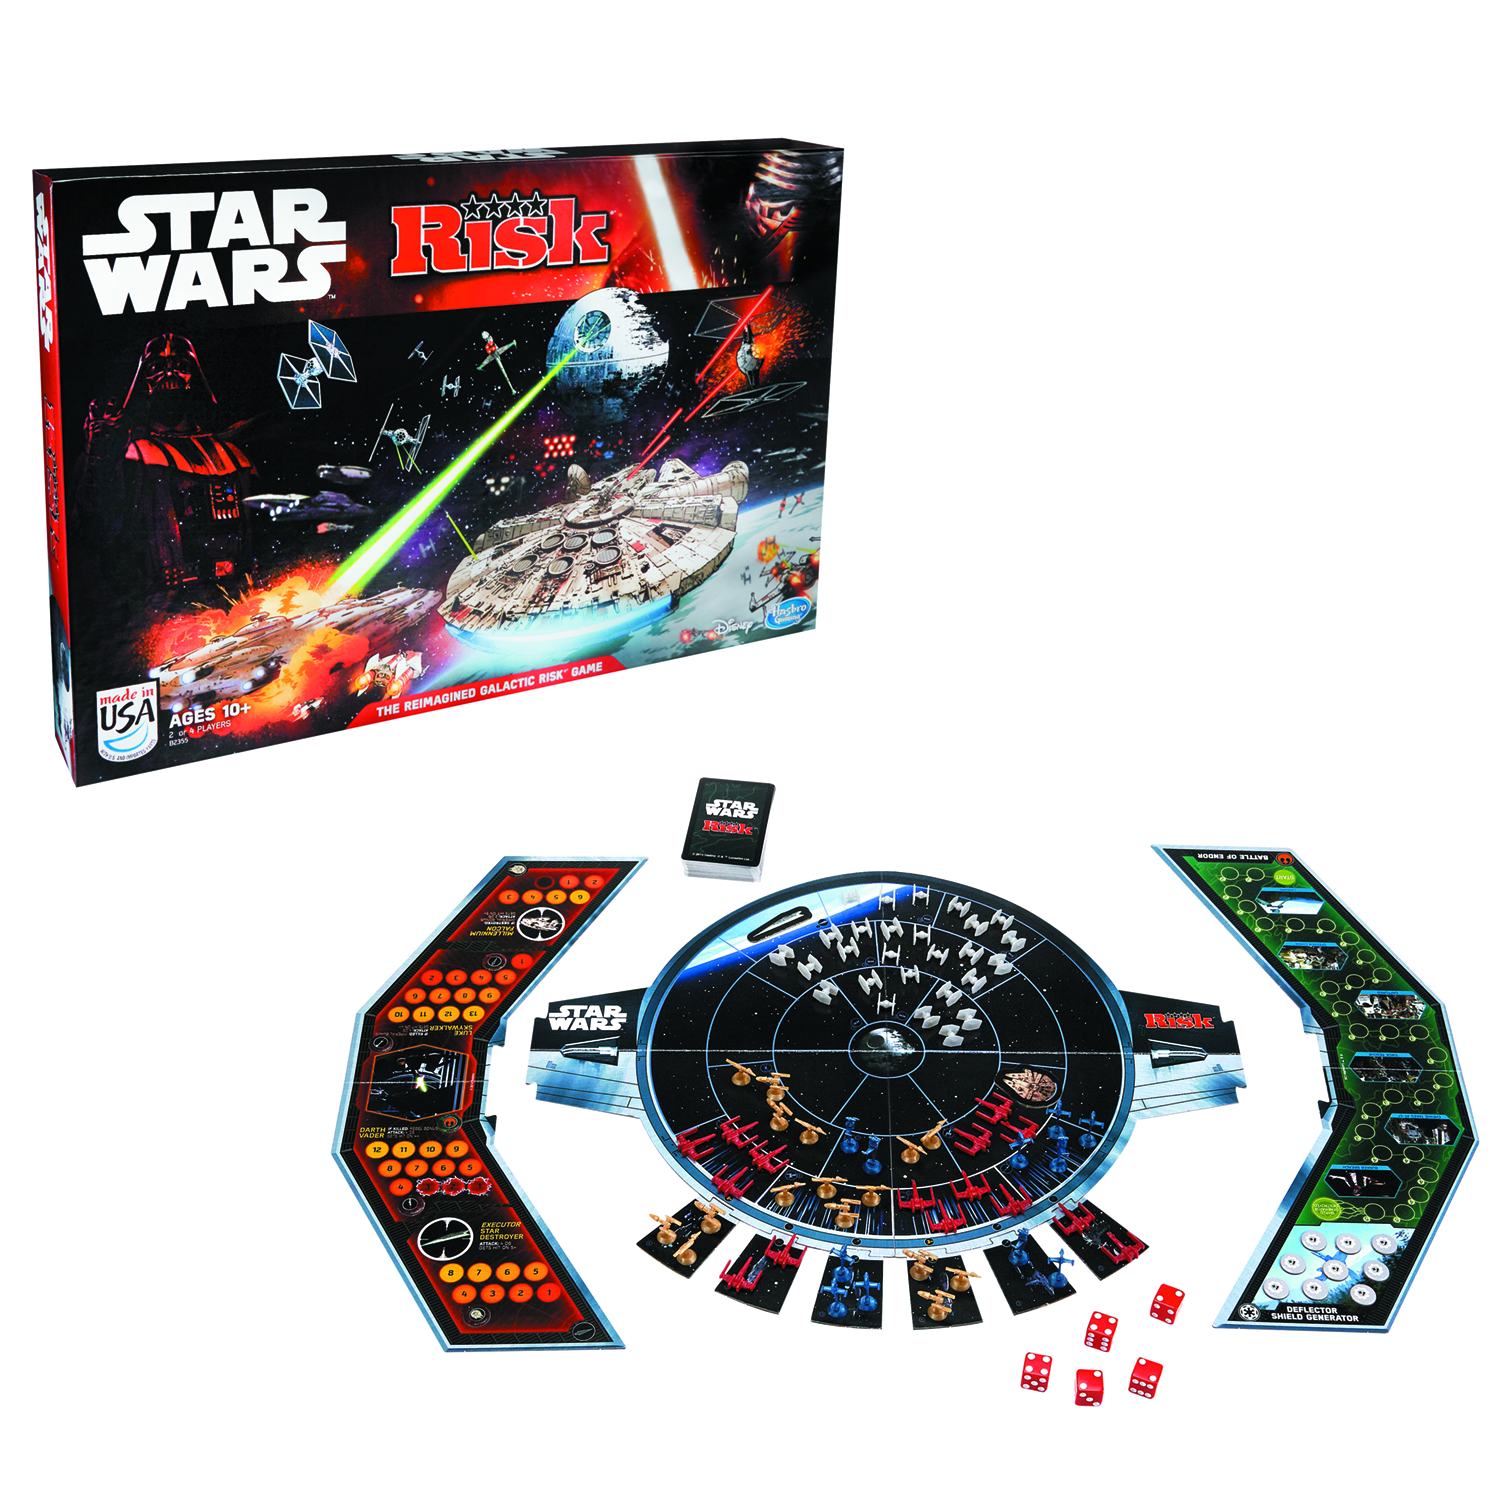 RISK STAR WARS EDITION GAME CS